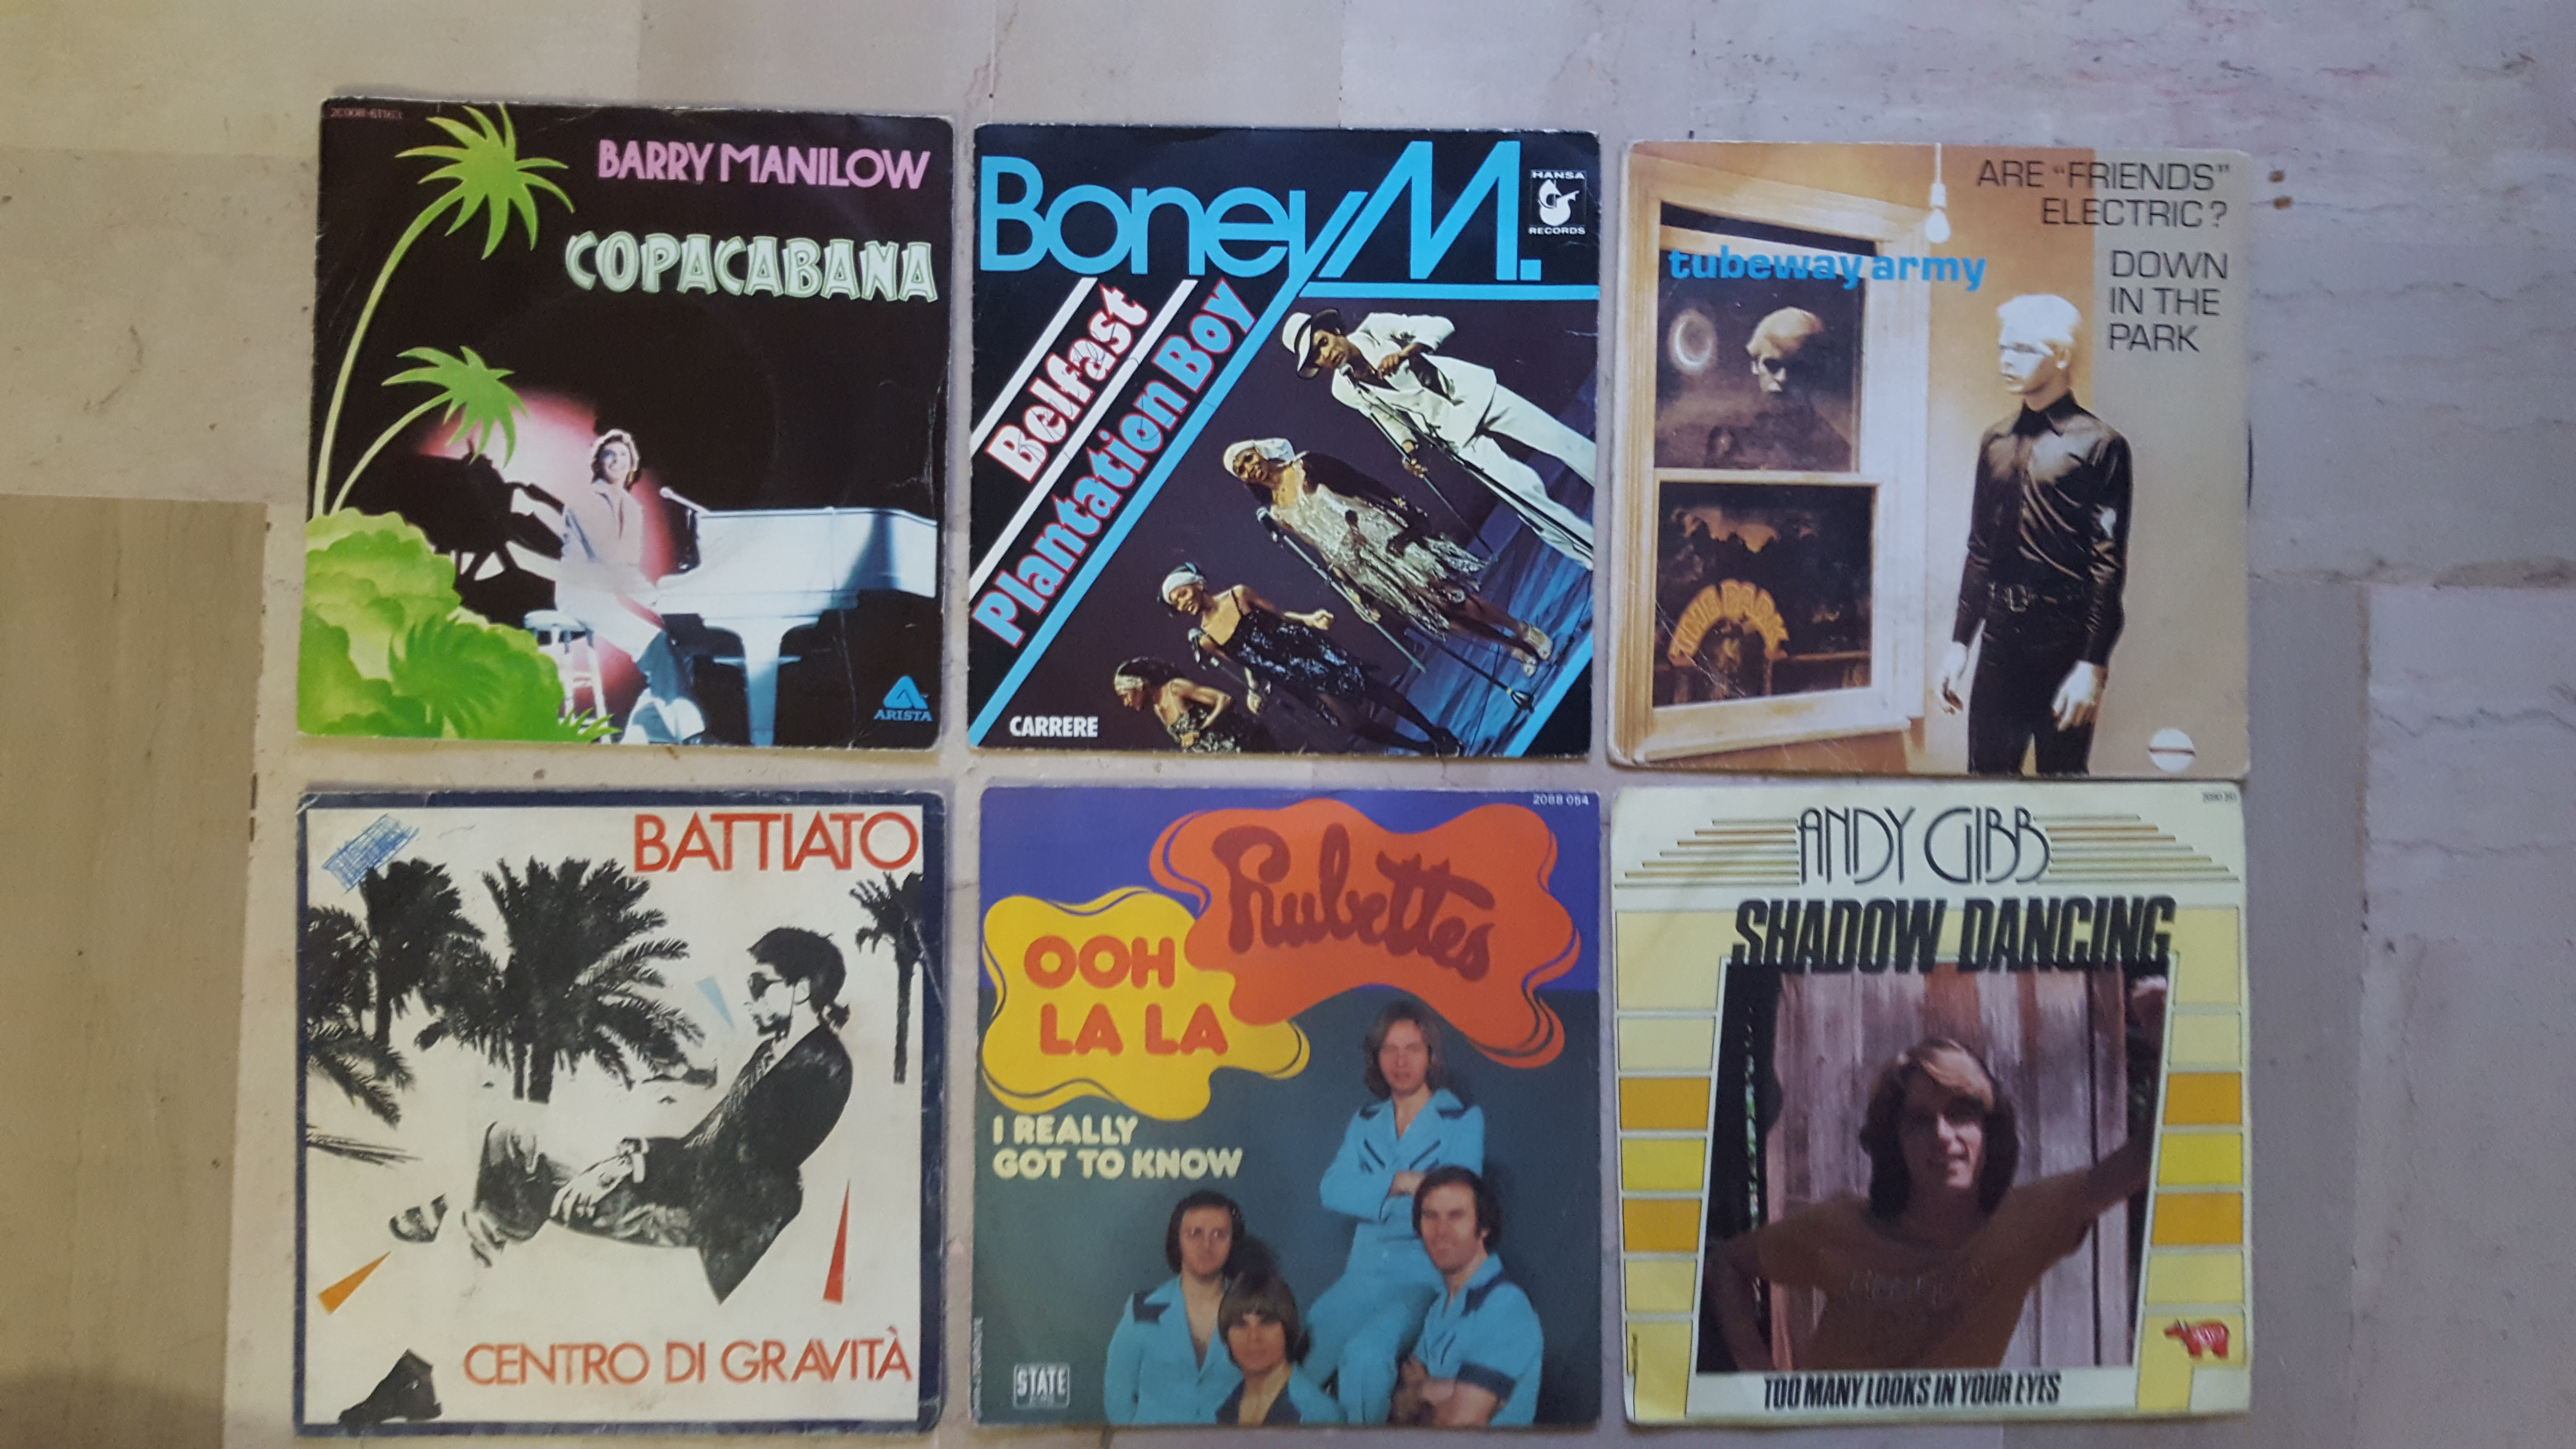 Buy vinyl artist% Centro di gravita ooh lala copacabana belfast plantation boy down in the park tubeway army for sale